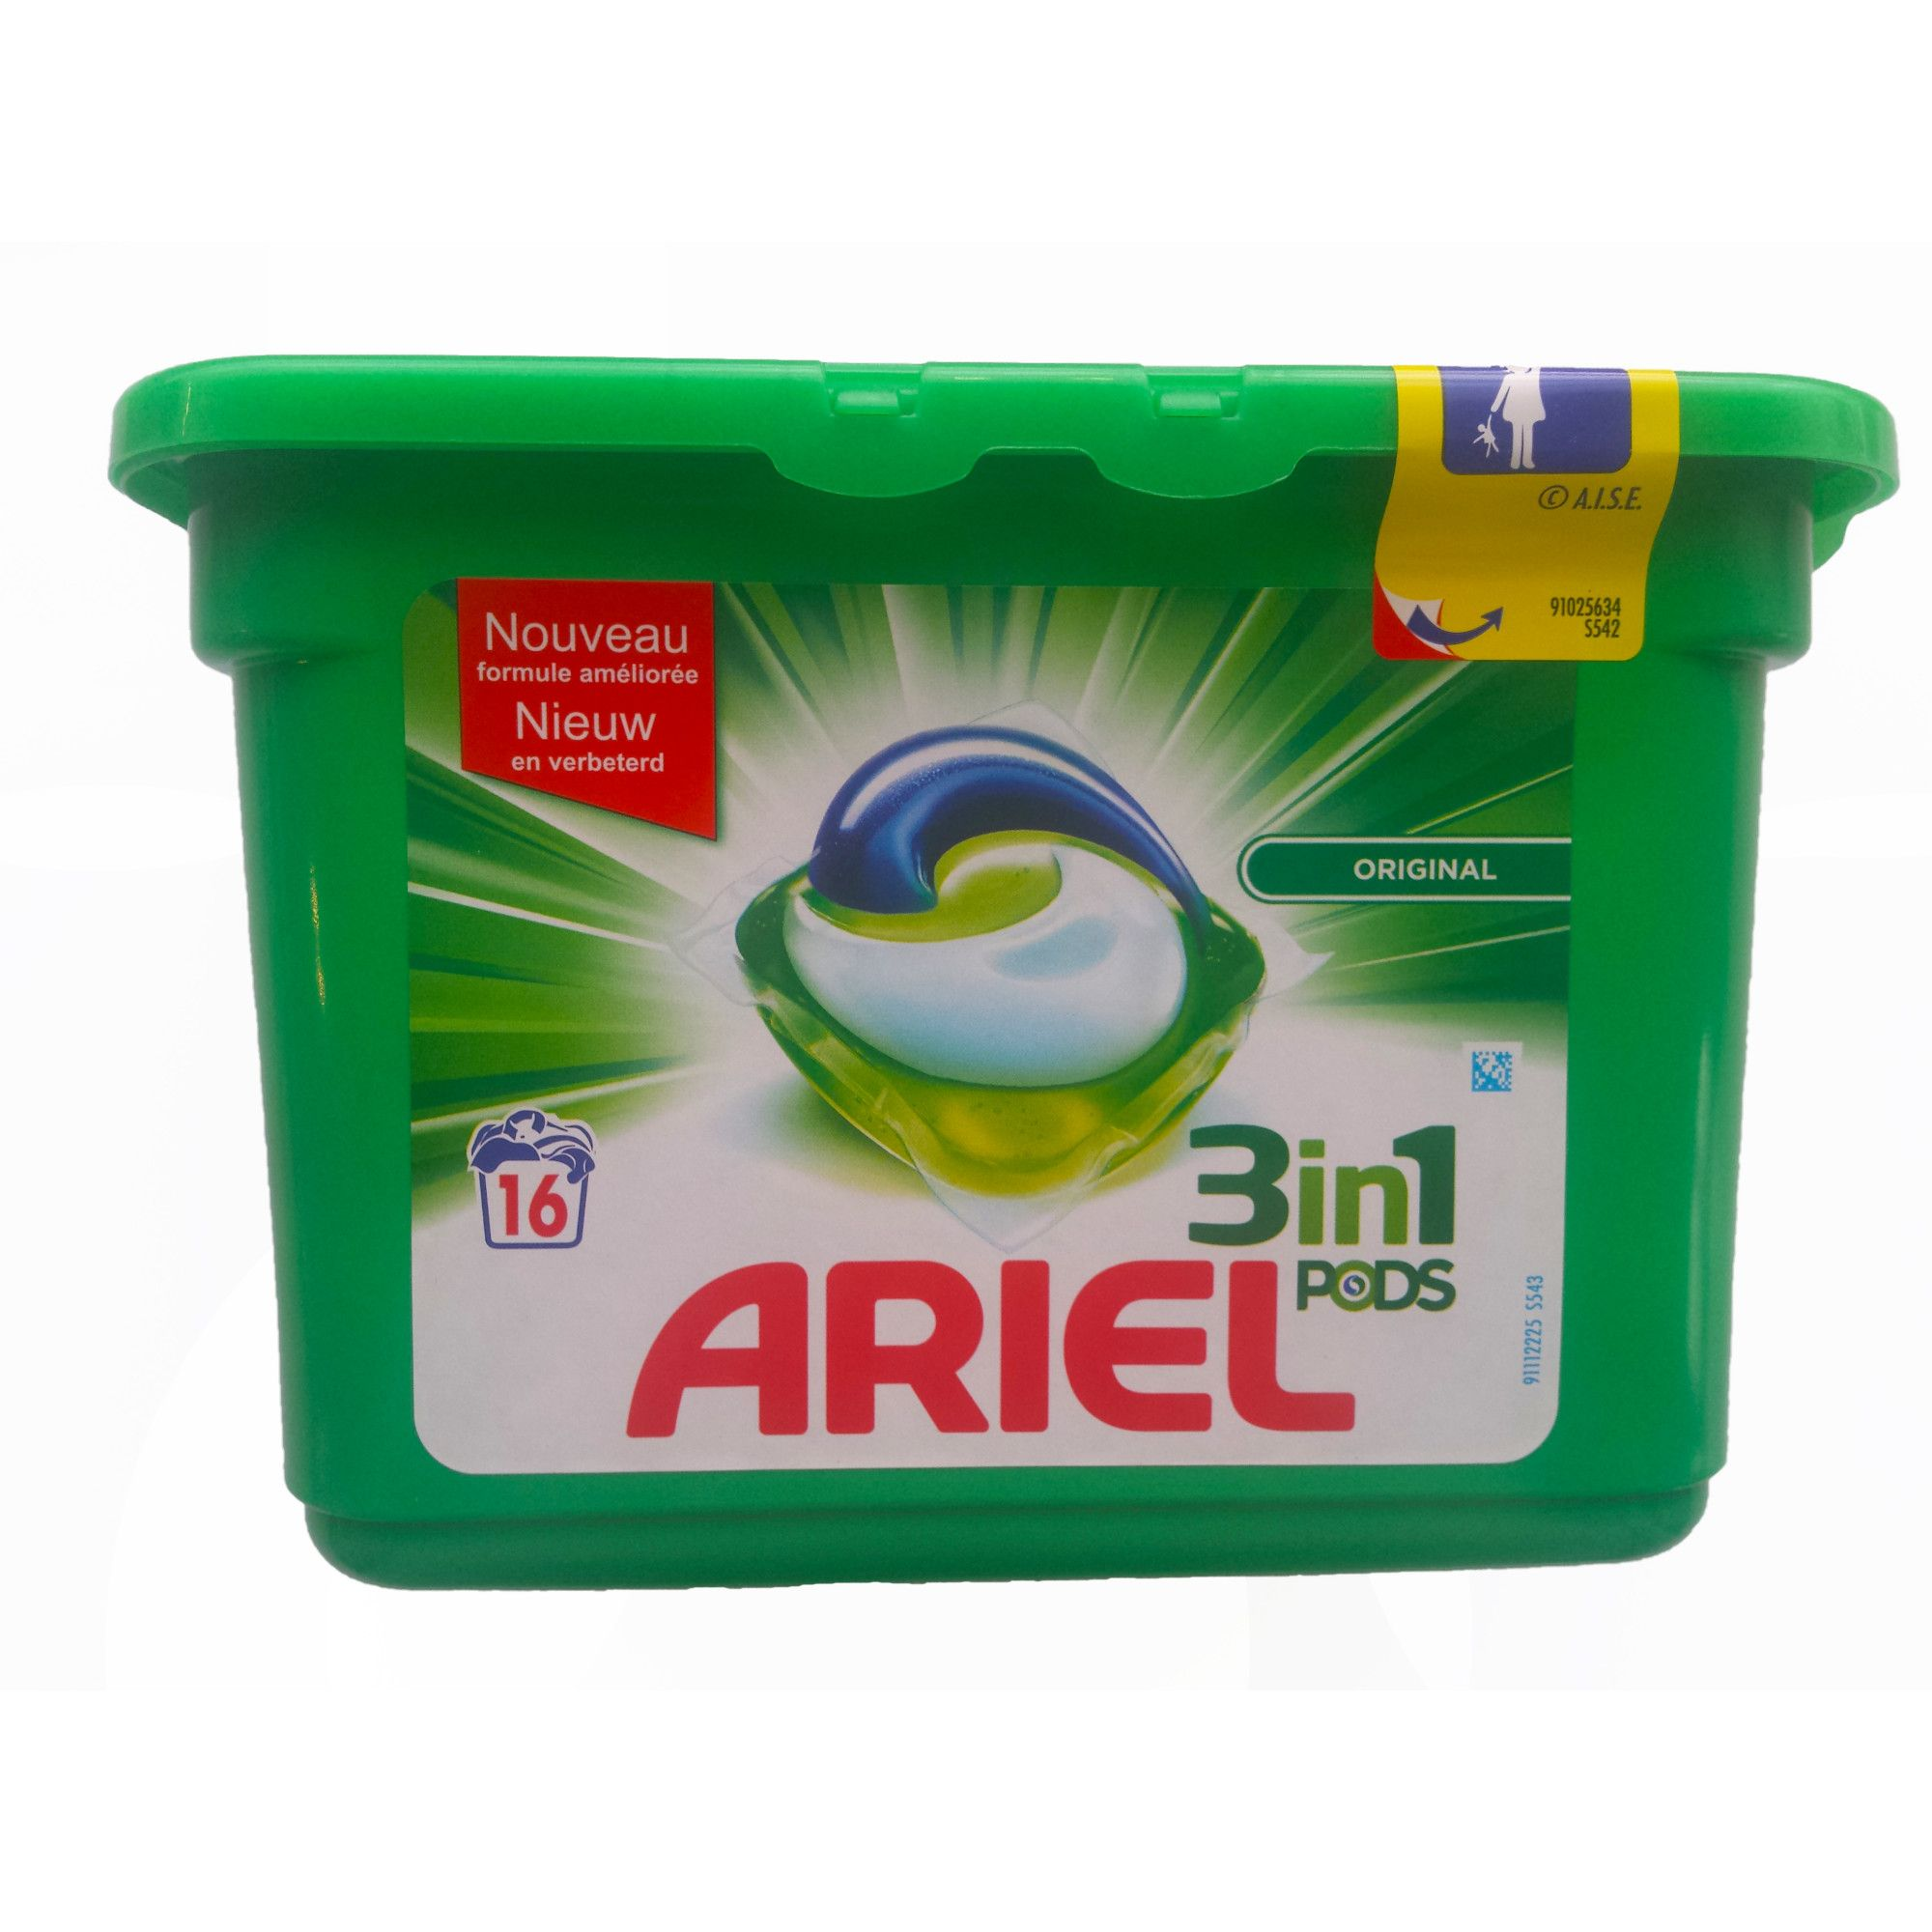 Ariel 3in1 PODS Original (WhatsApp: + 4915213365384)